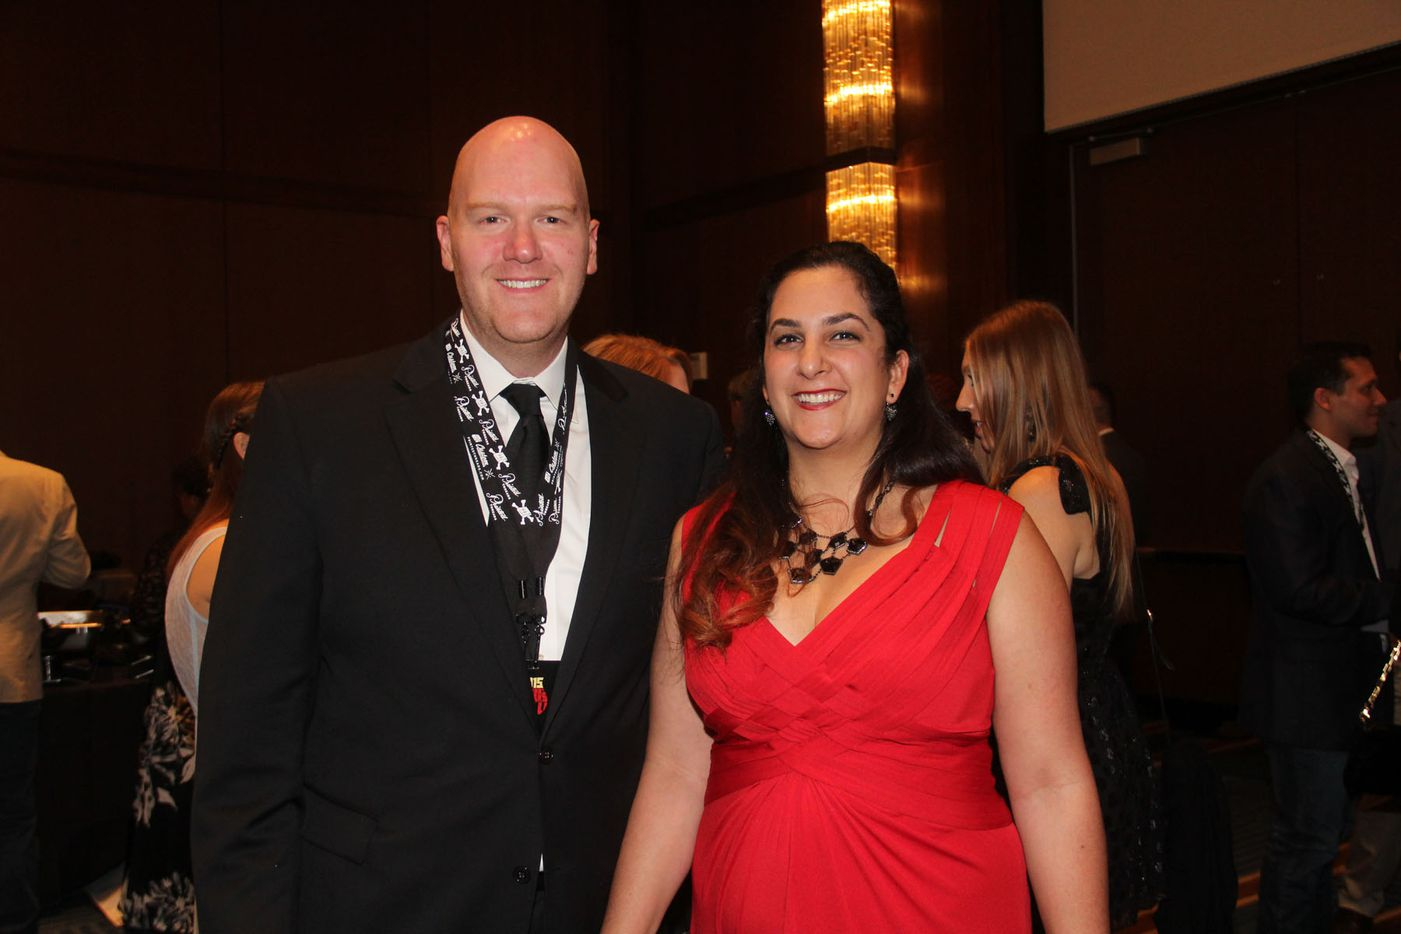 NTX Beer Week held its Second Annual Brewers Ball at the Renaissance Dallas Hotel on November 13, 2015. Chad and Nellie Montgomery